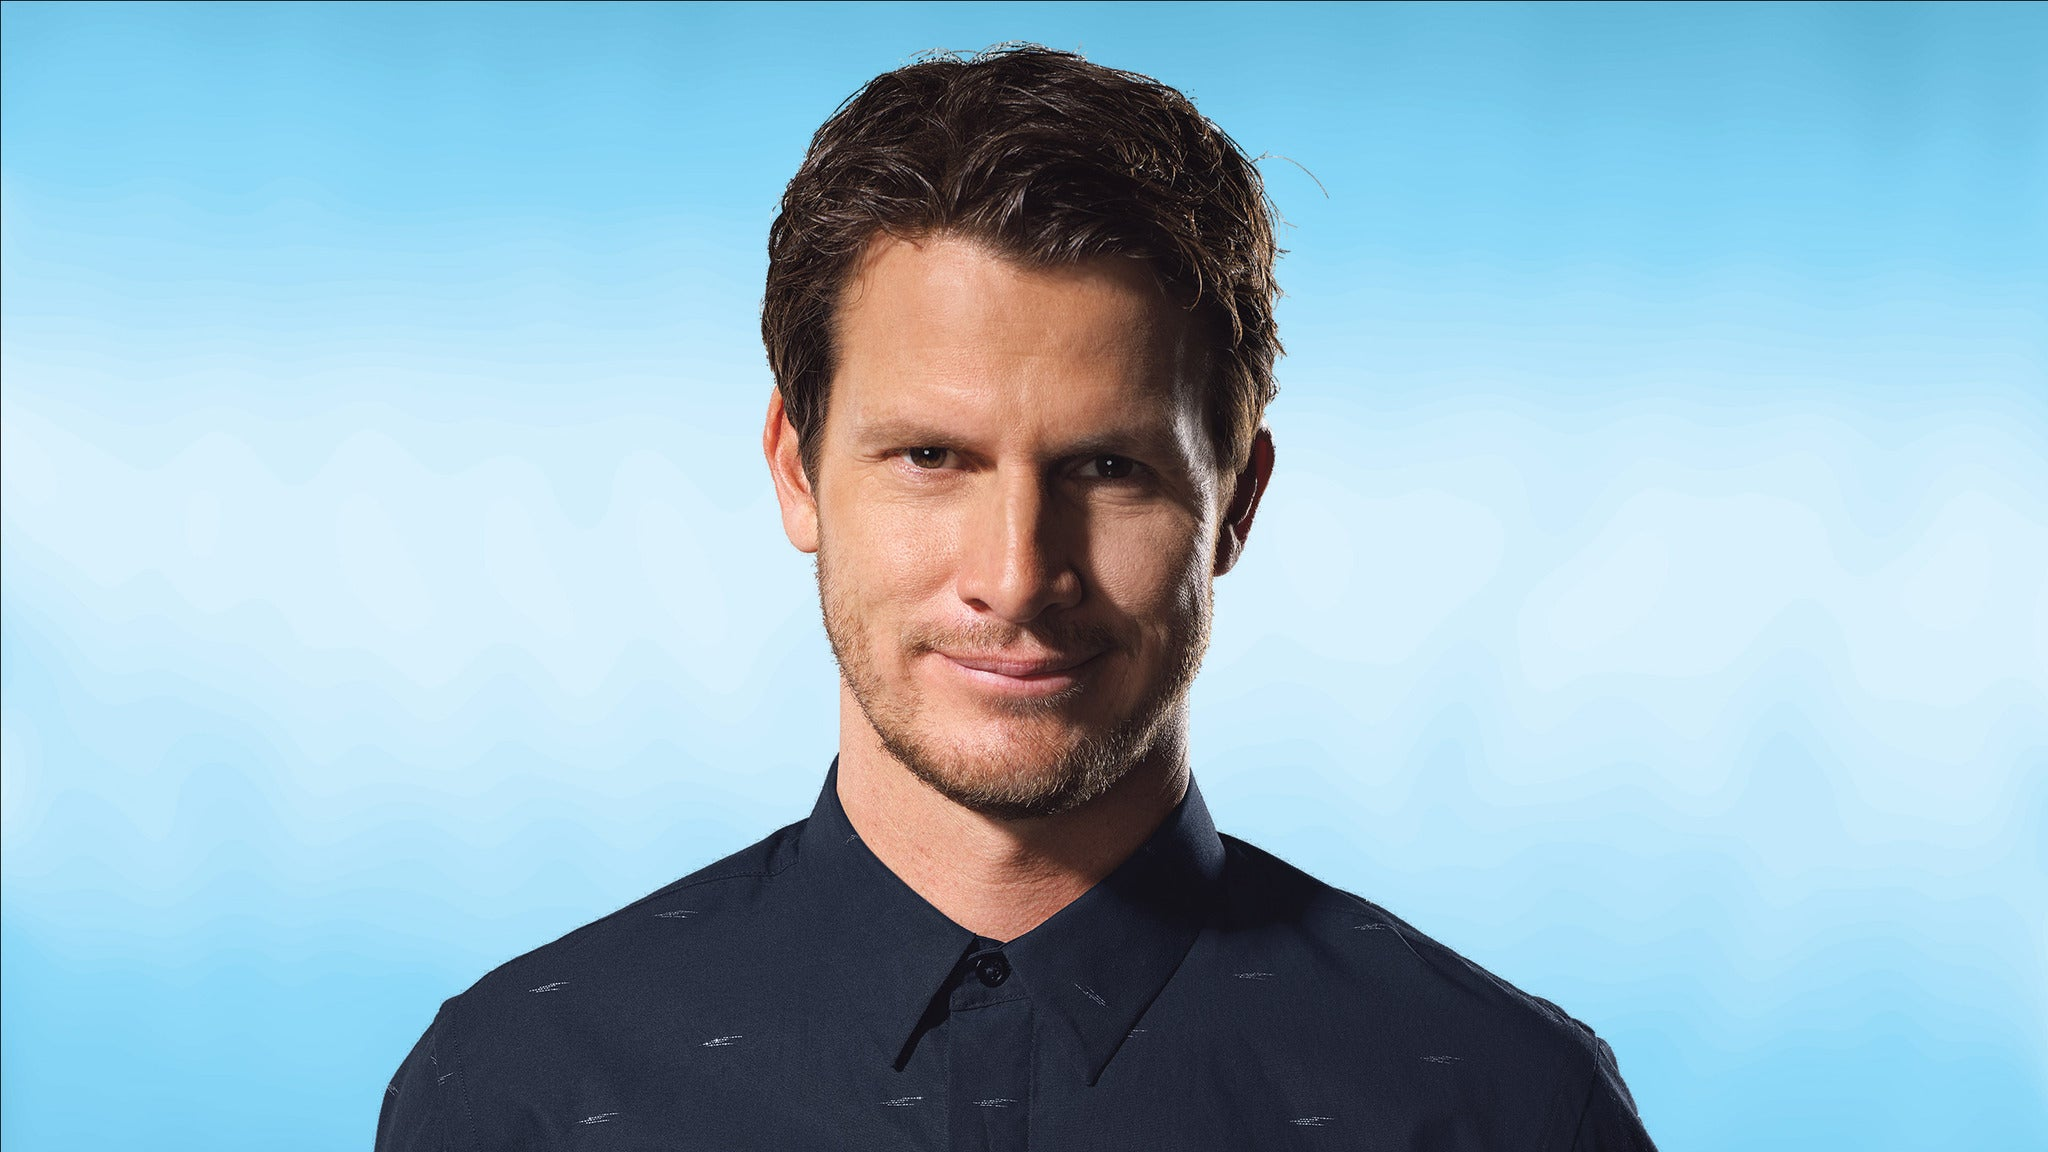 Daniel Tosh at Golden State Theatre